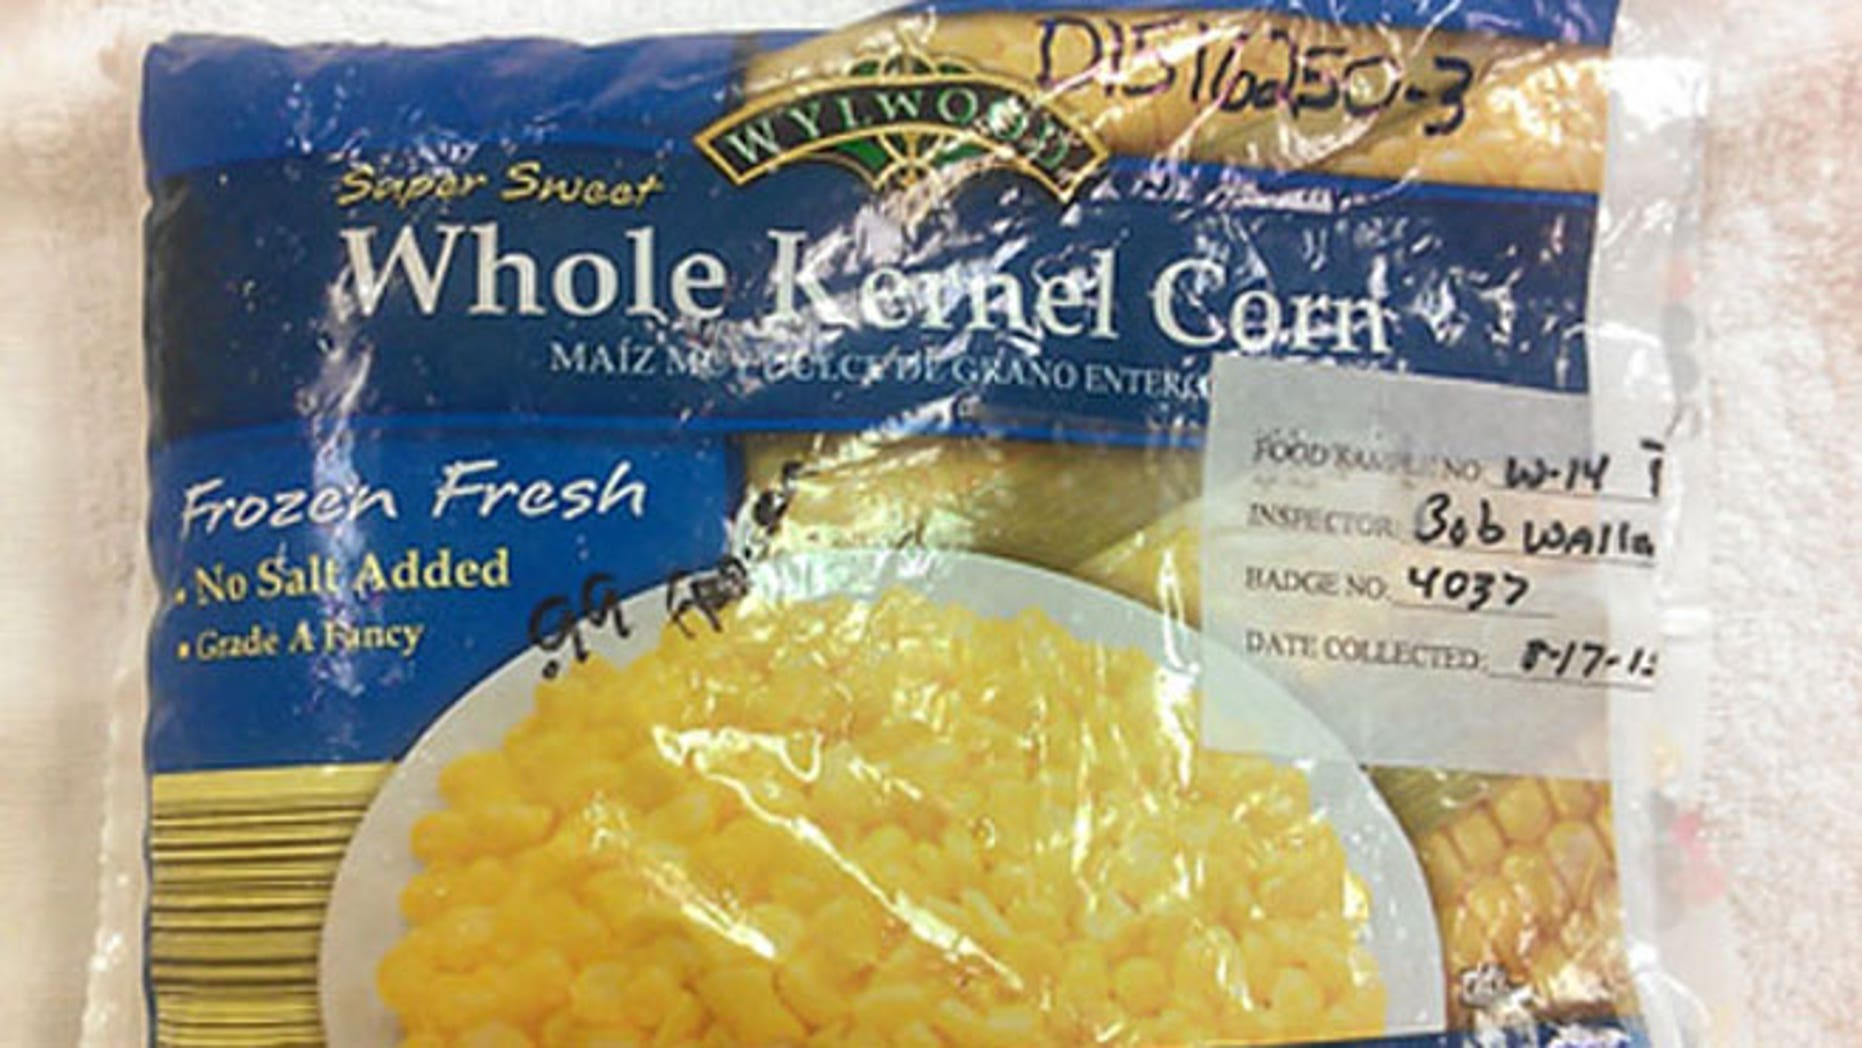 Brockport,, New York-based Bonduelle USA Inc. is recalling 9,335 cases of frozen corn after some of the product tested positive for Listeria monocytogenes, which can lead to listeria, a potentially fatal illness.